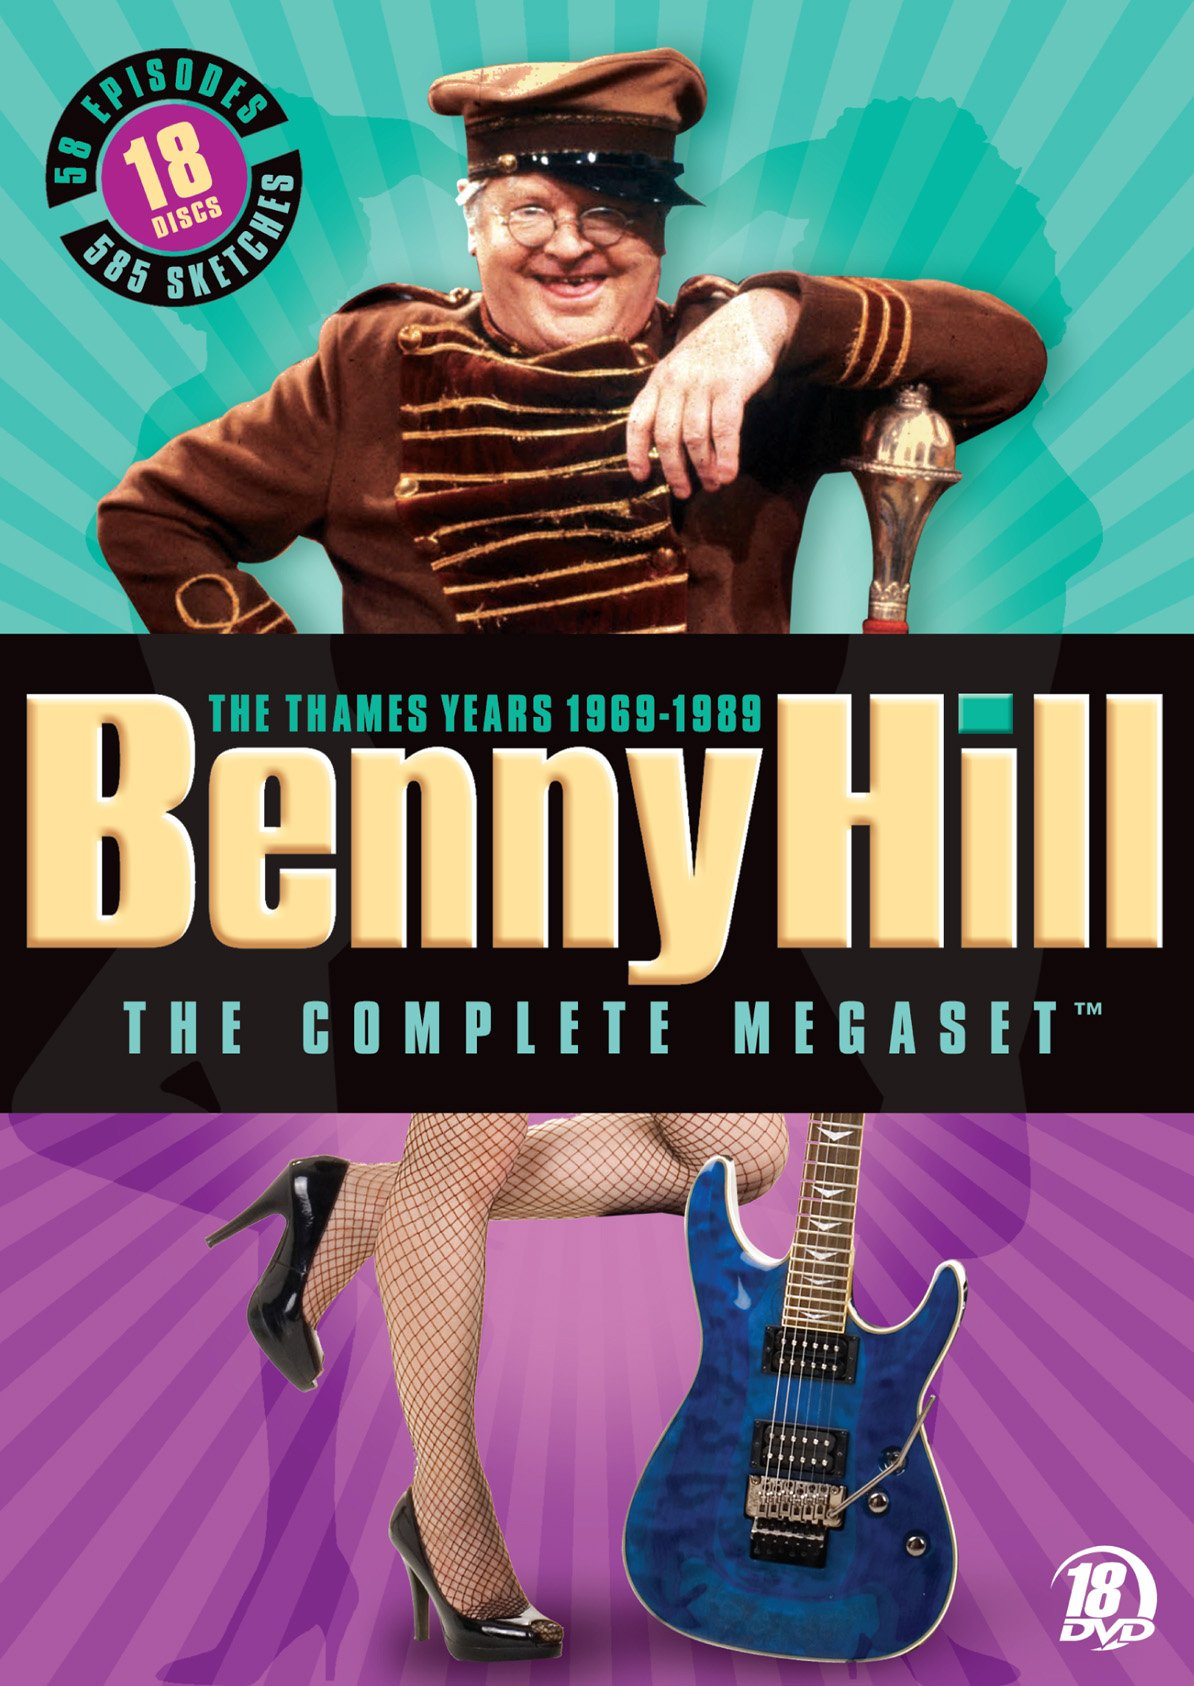 Benny Hill: The Complete Megaset: The Thames Years 1969-1989